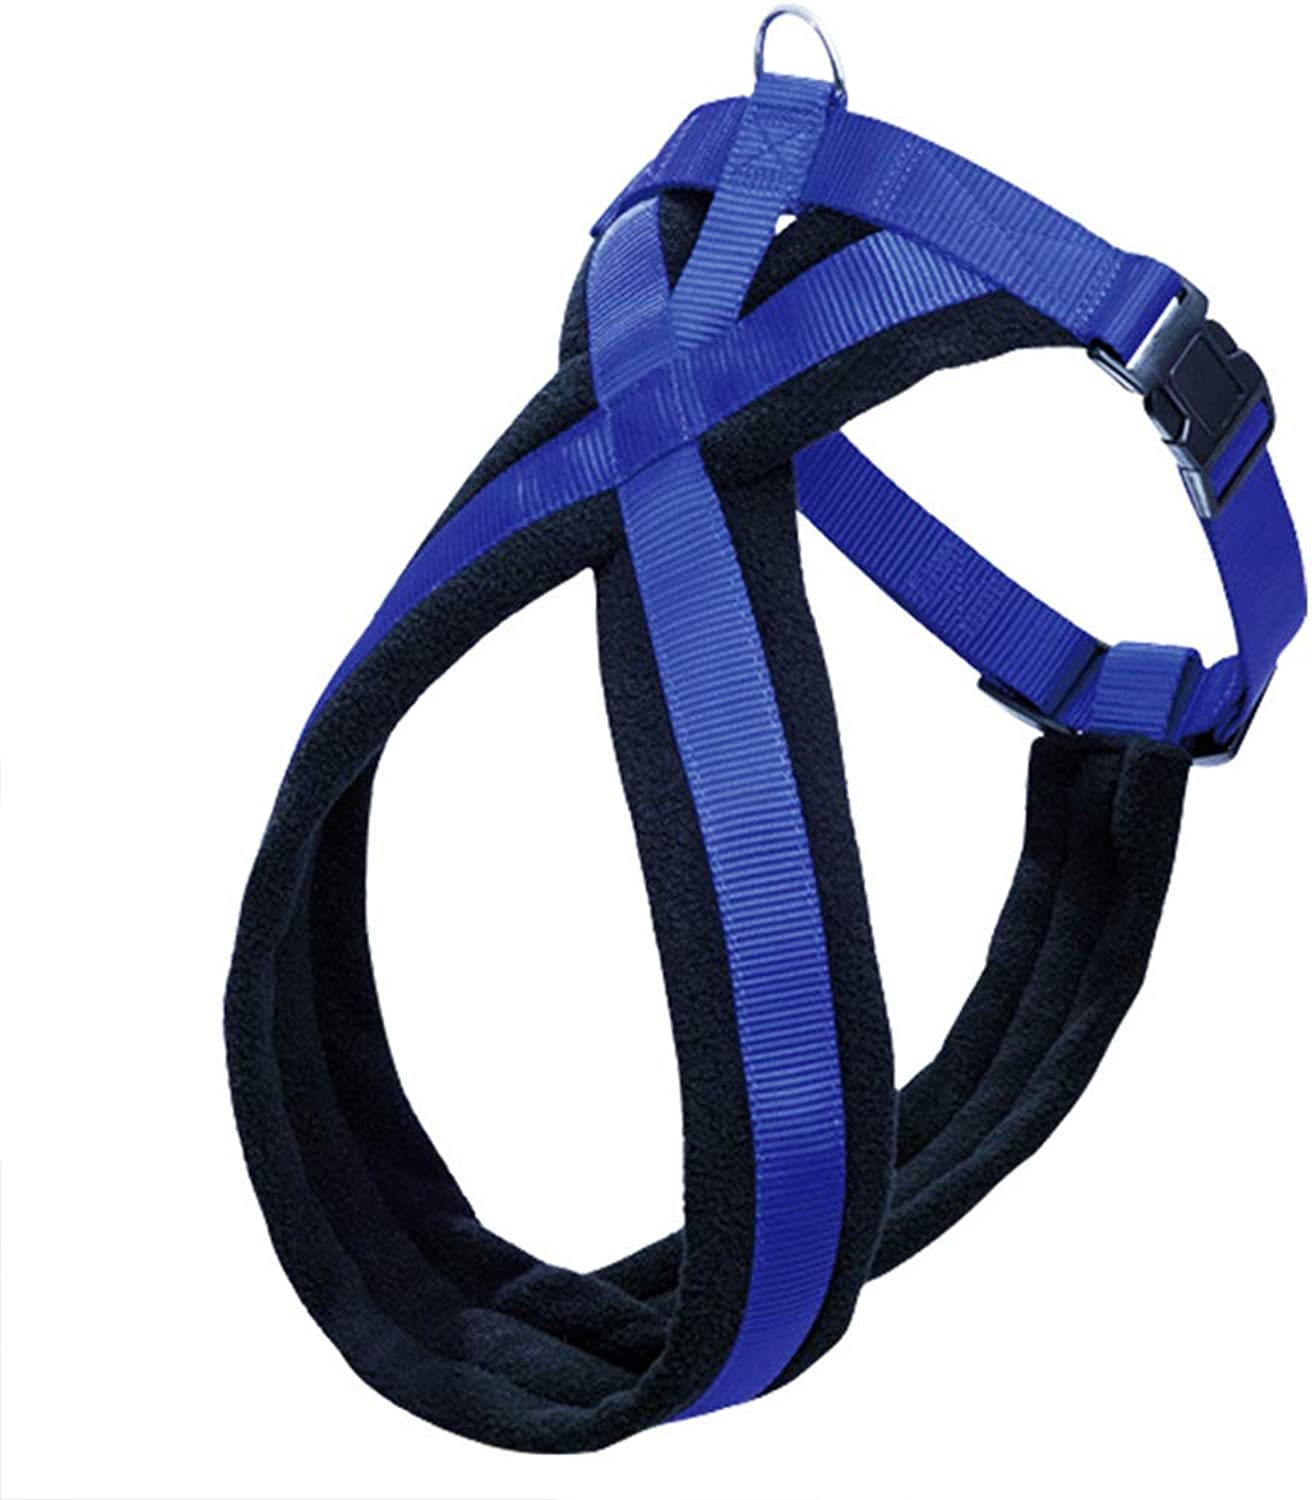 Dog Harness Plus Connector Strap Soft Comfort Fleece Padded Large Dog Harness Pet Walking Harness